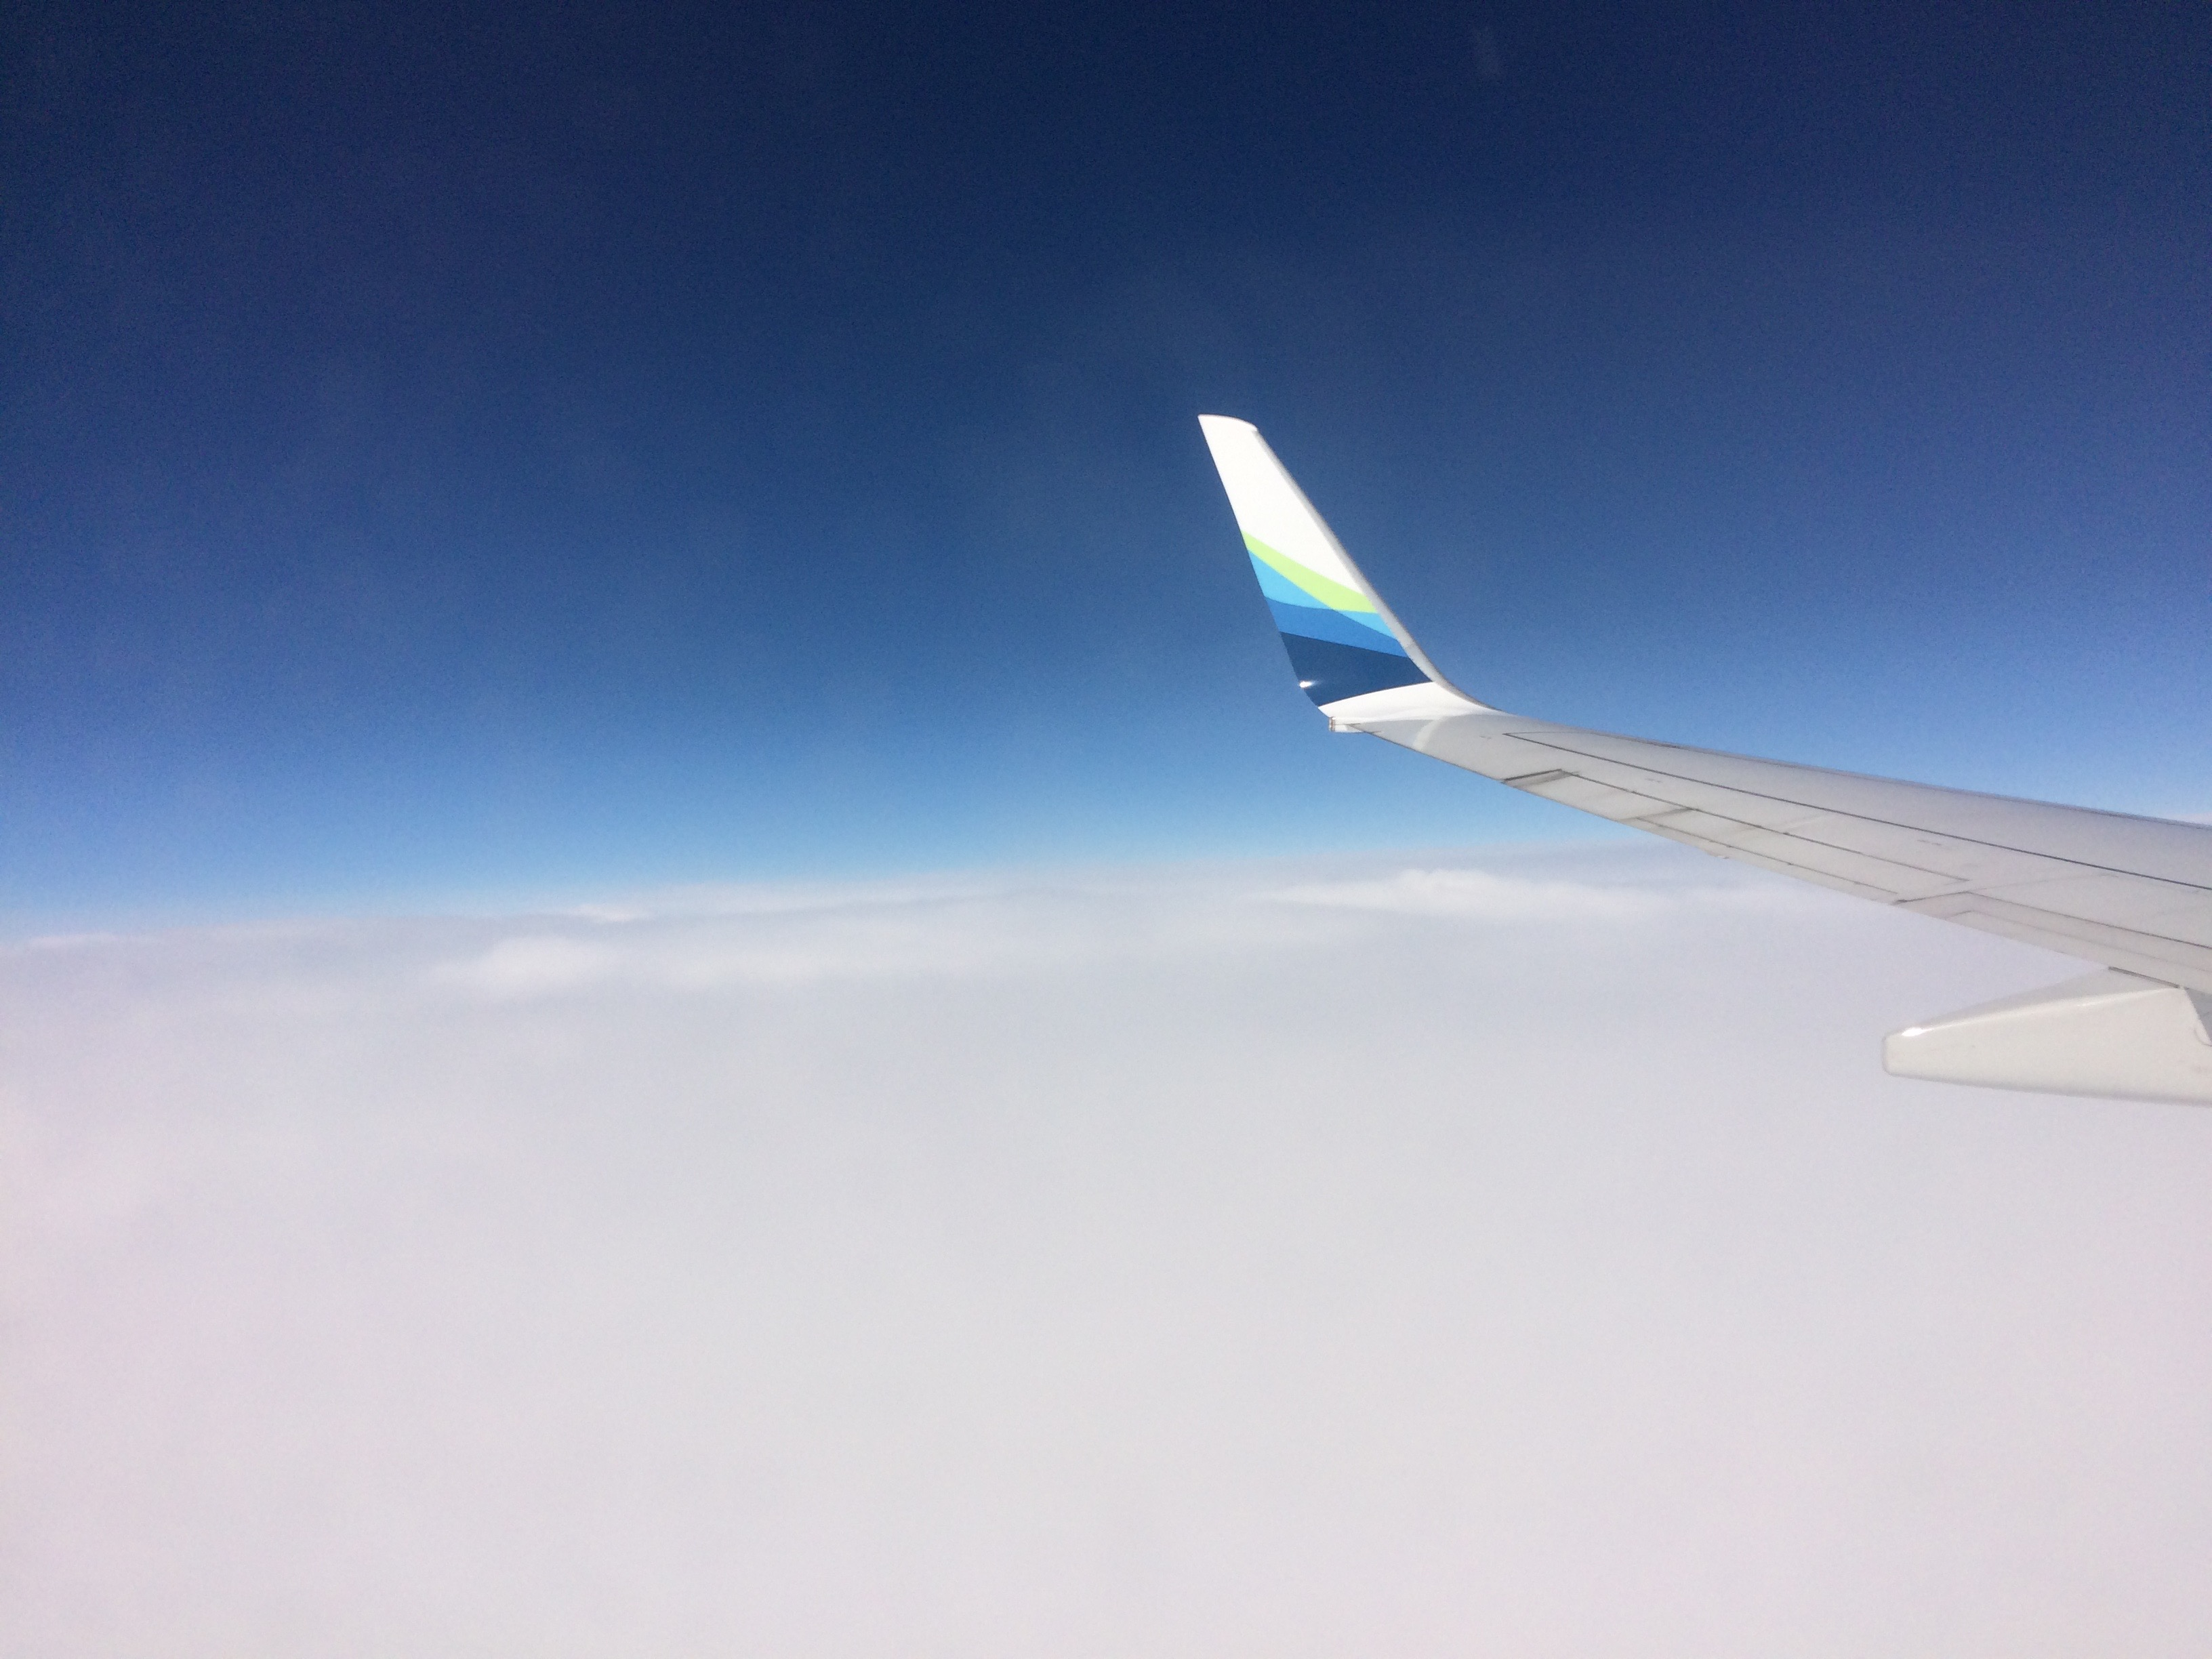 airplane, wing, sky